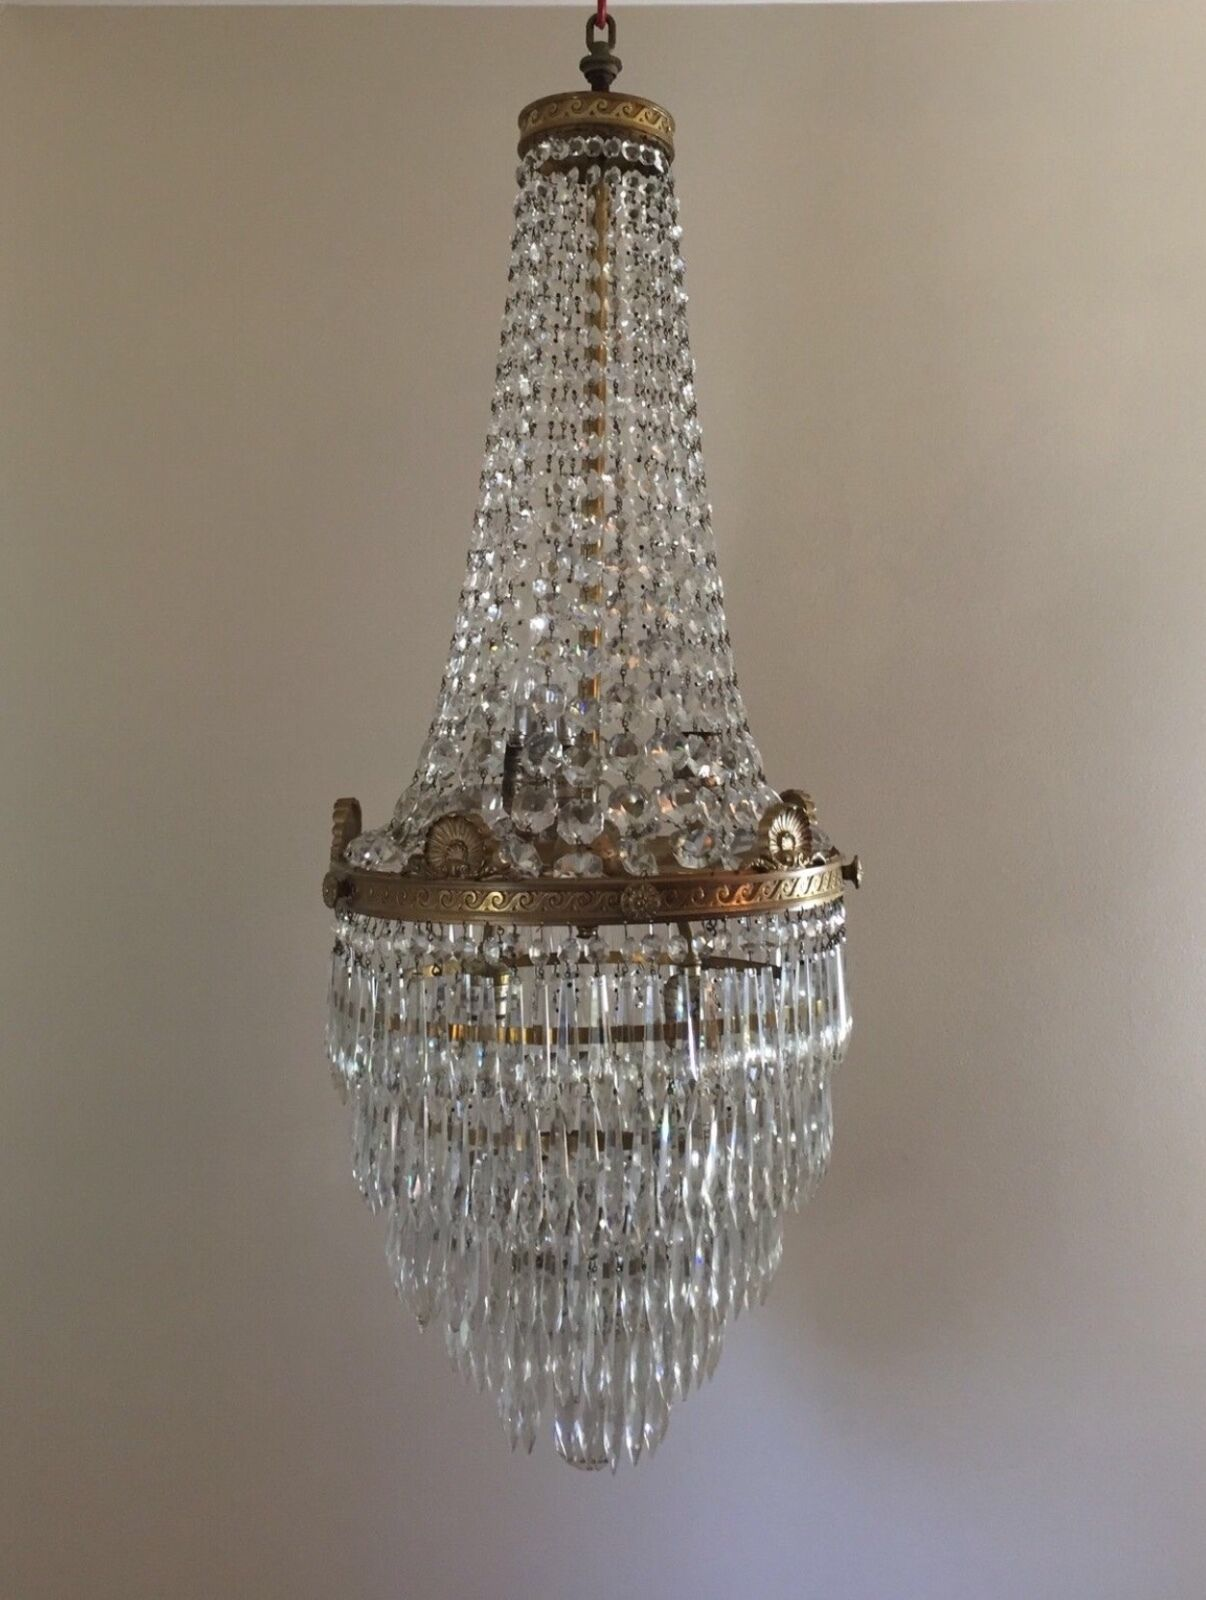 1 of 5FREE Shipping Antique French Empire Brass Beaded Basket Crystal  Chandelier Wedding Cake - ANTIQUE FRENCH EMPIRE Brass Beaded Basket Crystal Chandelier Wedding